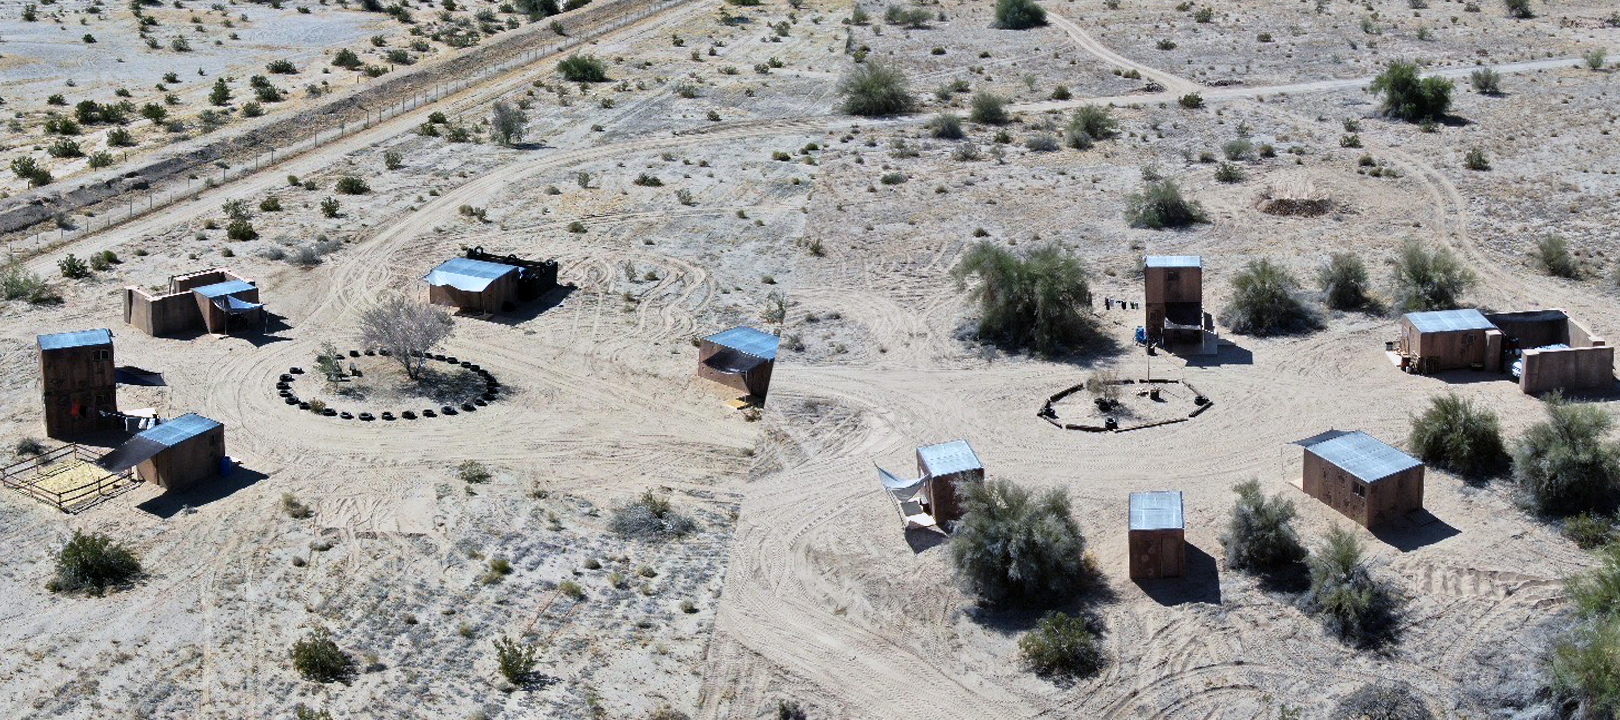 Area 33 FTX support site at Desert Center, CA